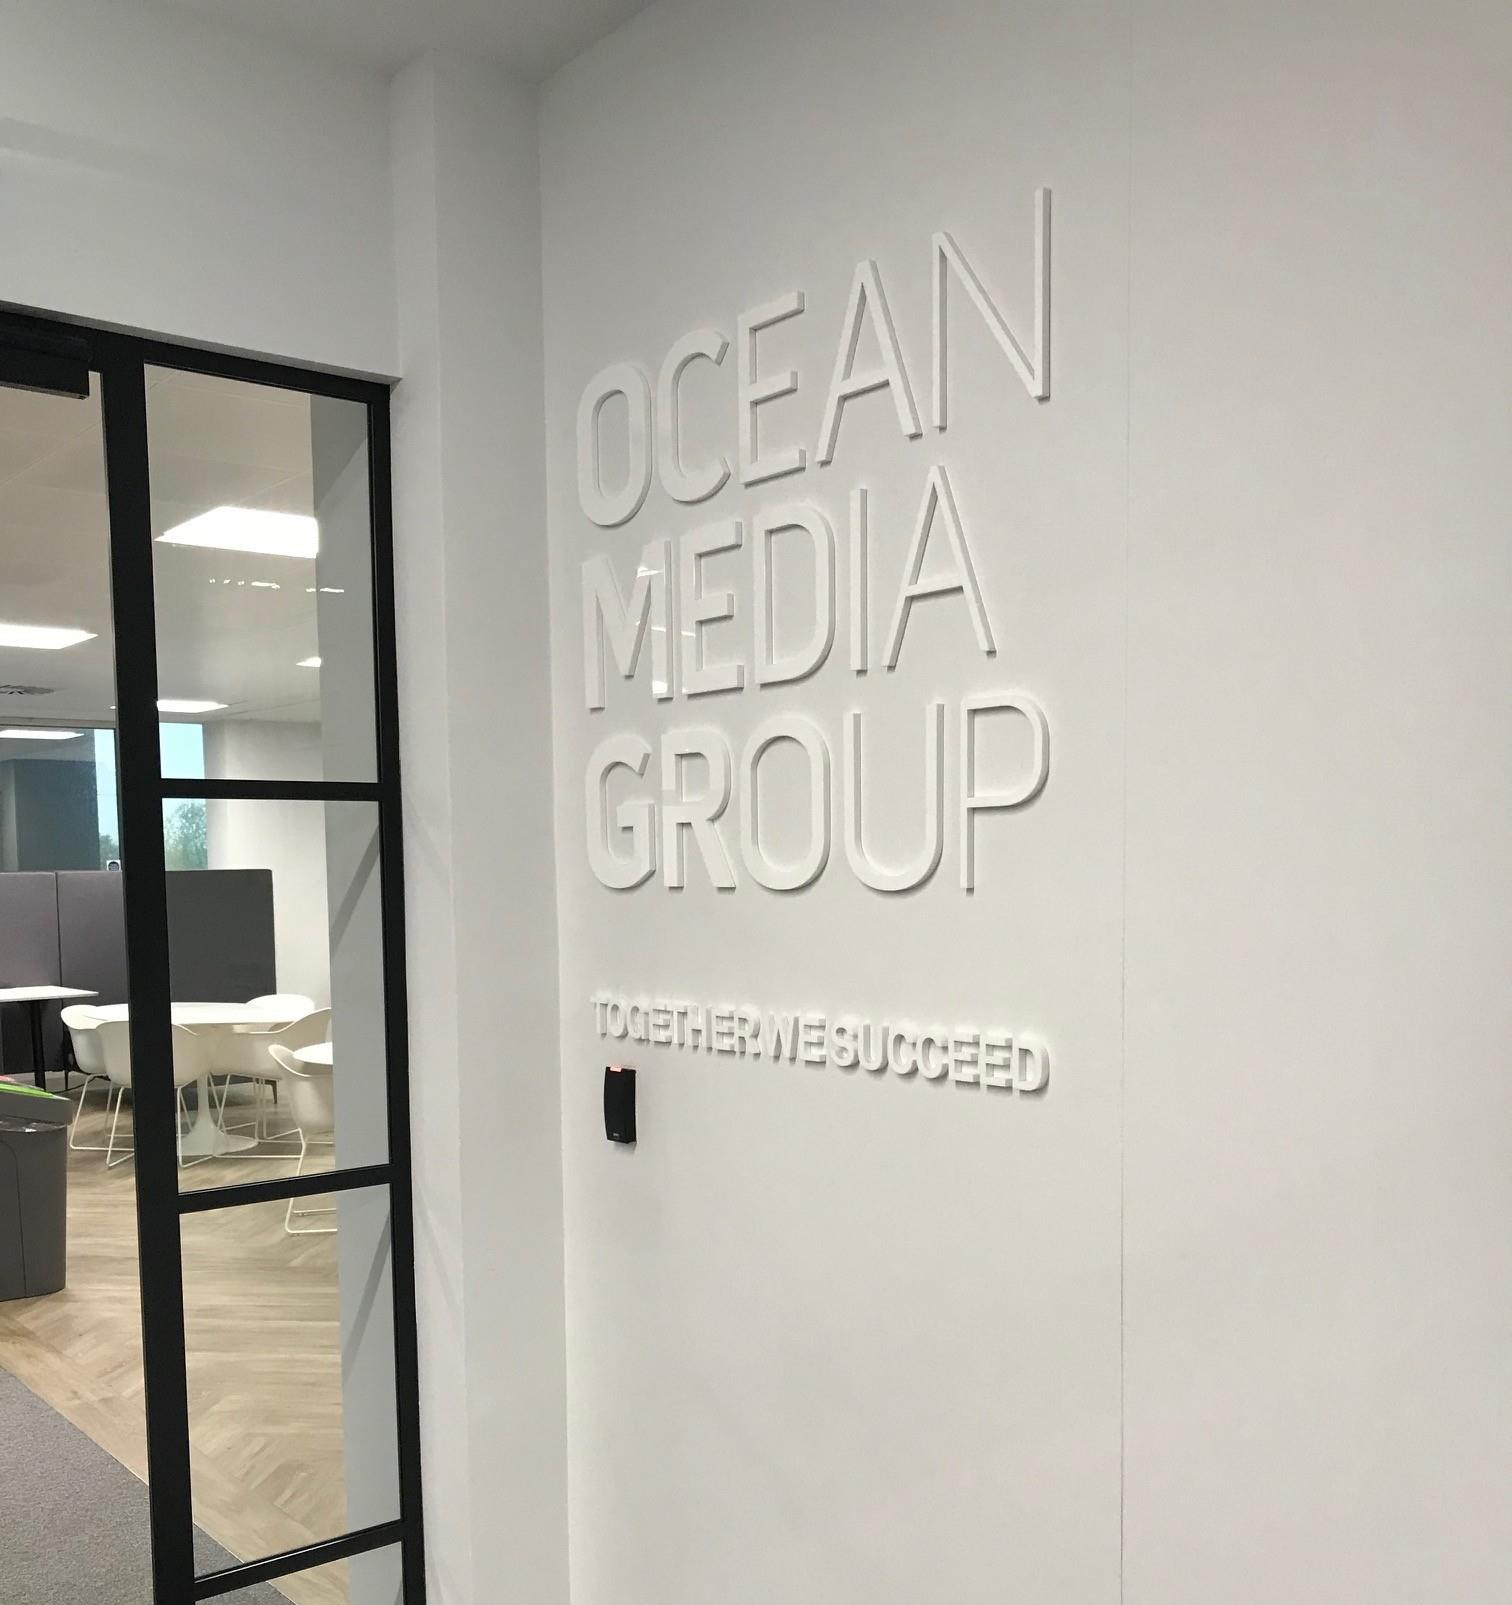 Interior Perspex Office Sign For Ocean Media Group